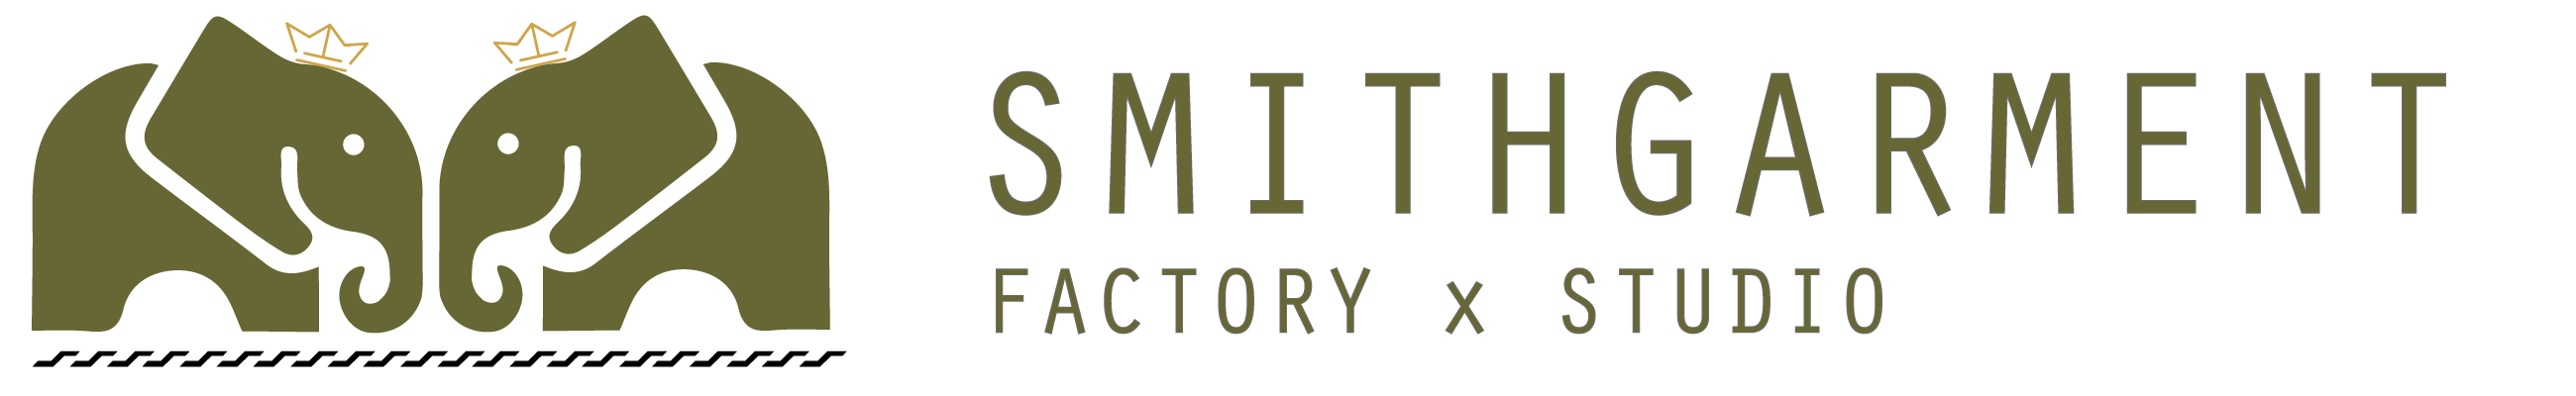 SMITH GARMENT FACTORY